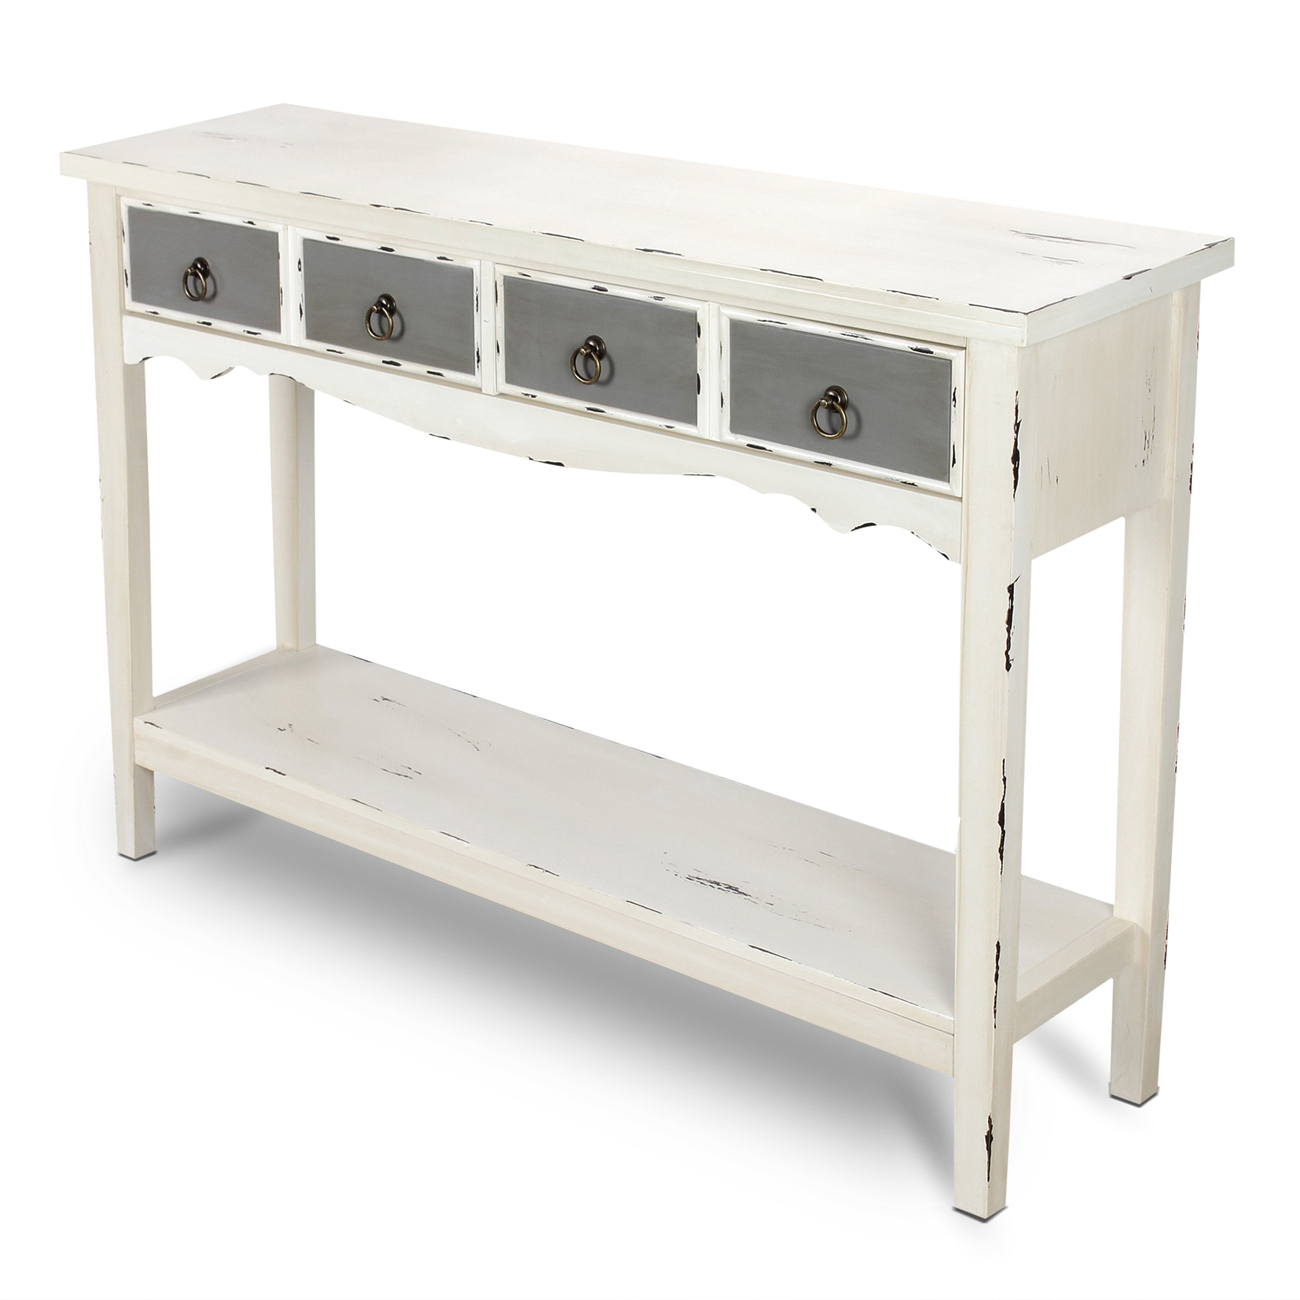 Antique White Distressed Console Tables Throughout Well Liked Modern Two Tone – Two Drawer Distressed Console Entryway Table (View 4 of 20)